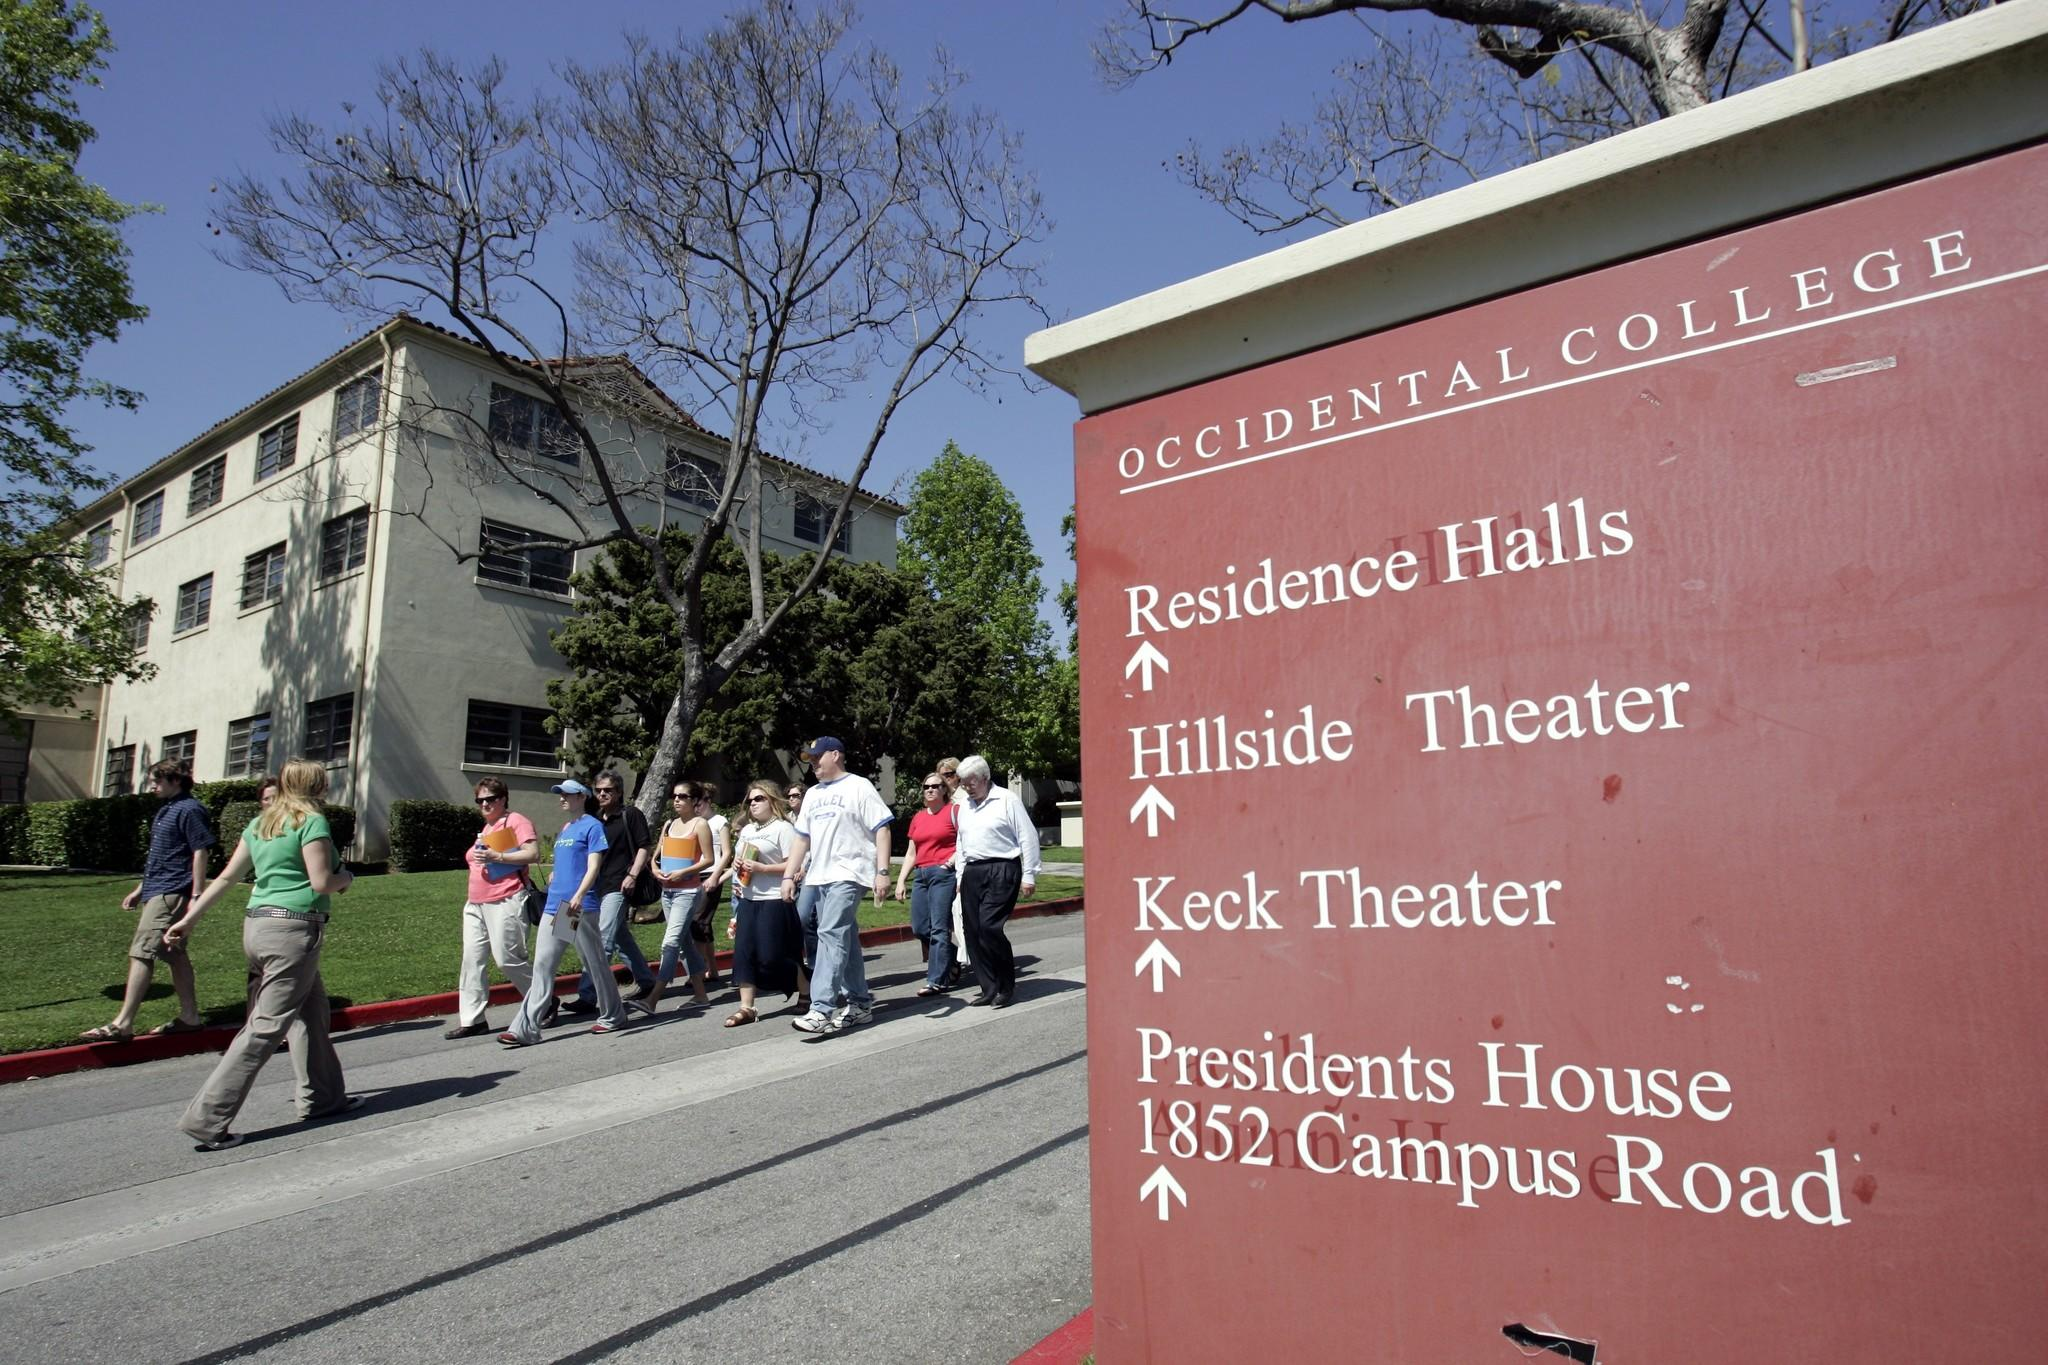 Occidental College for months has been at the center of a nationwide push to hold campus administrators responsible for violating federal laws on the handling of sexual assault reports. More than 50 students and faculty at the college have signed on to two federal complaints alleging Occidental routinely discouraged women from reporting alleged assaults and bungled investigations.